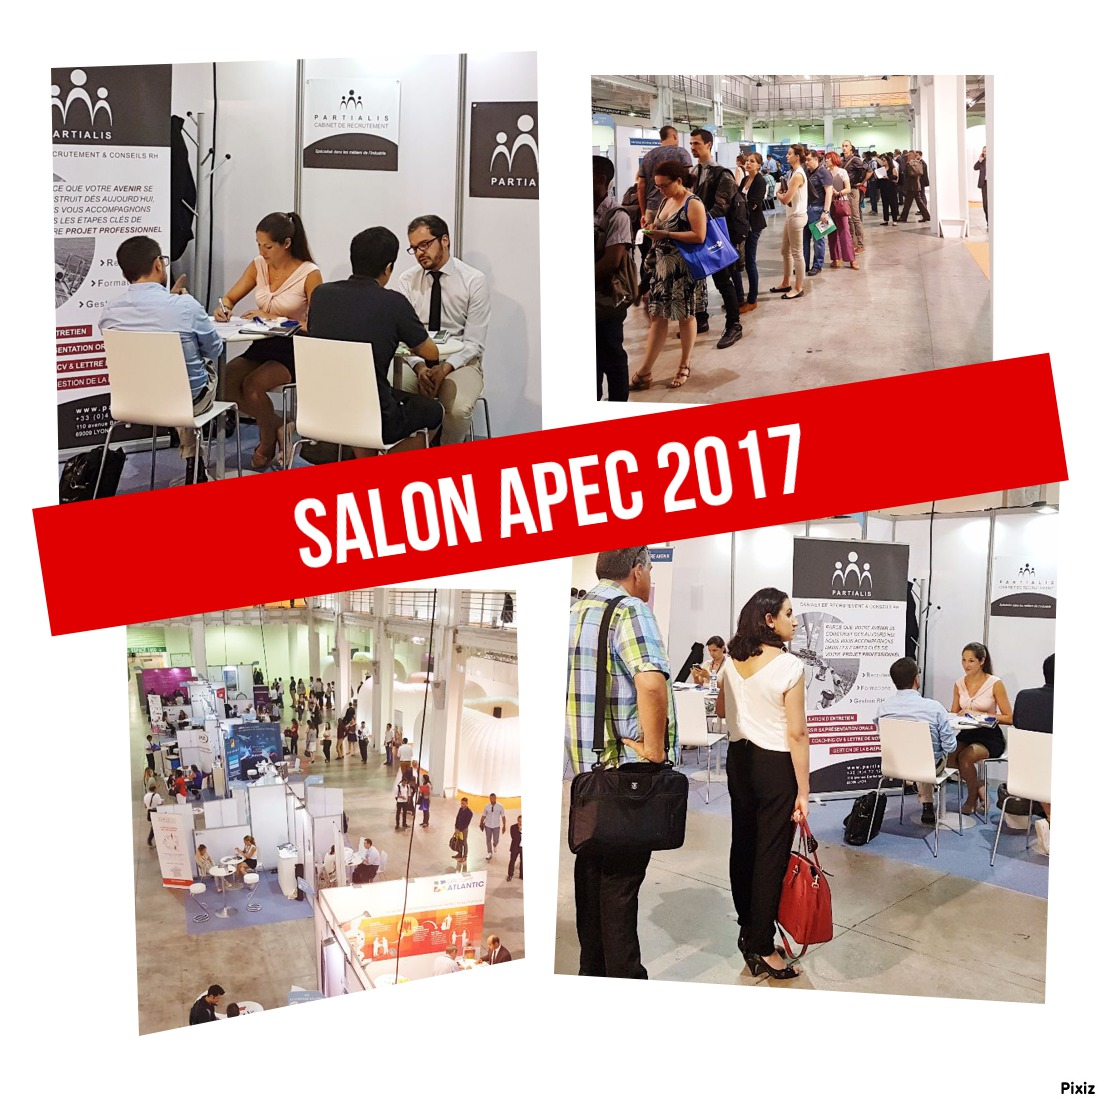 Salon de l apec 2017 recrutement et emploi industrie en for Salon de l industrie 2017